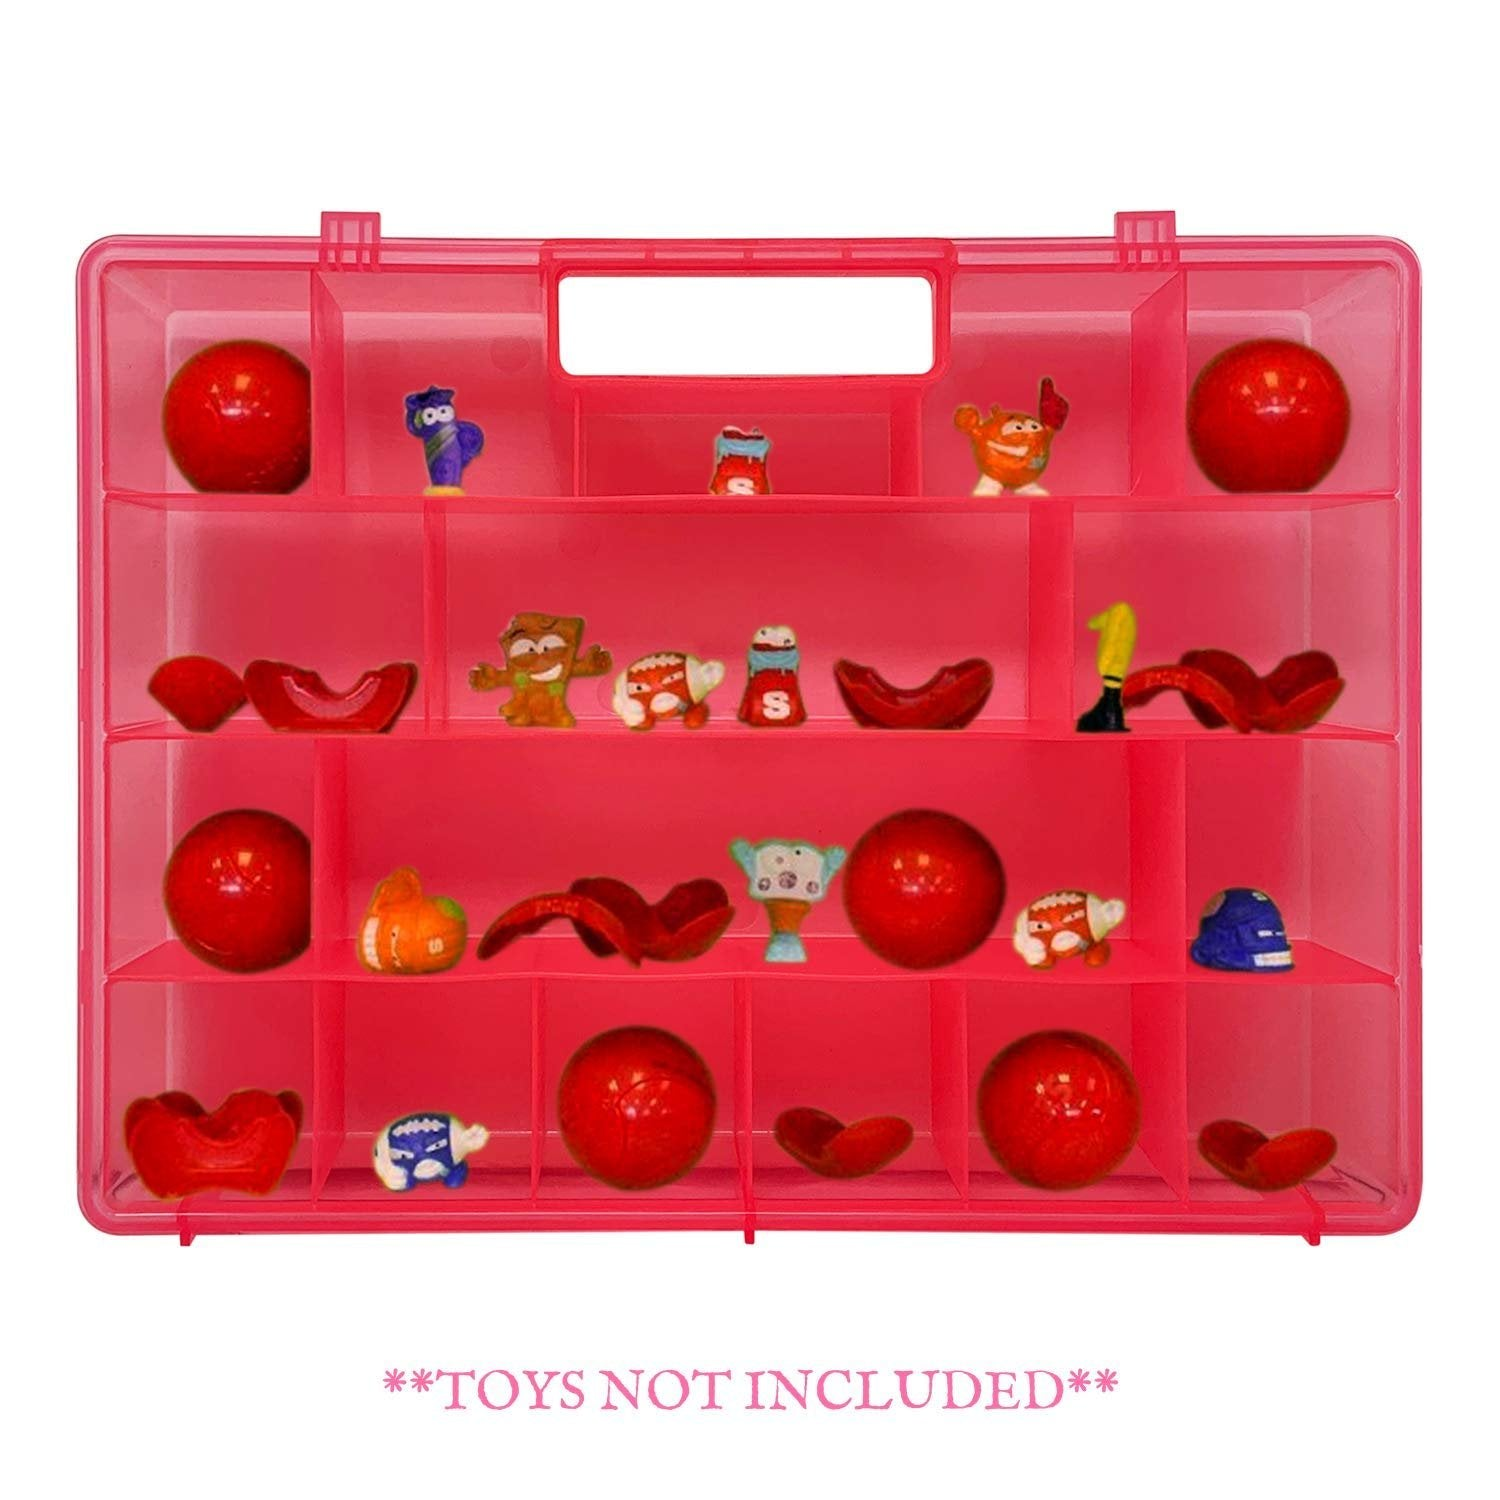 Life Made Better, Portable Pink Carrying Case, Works with Zuru Smashers, Toy Organizer not Made by ZuRu Smashers, Toy Accessories by LMB